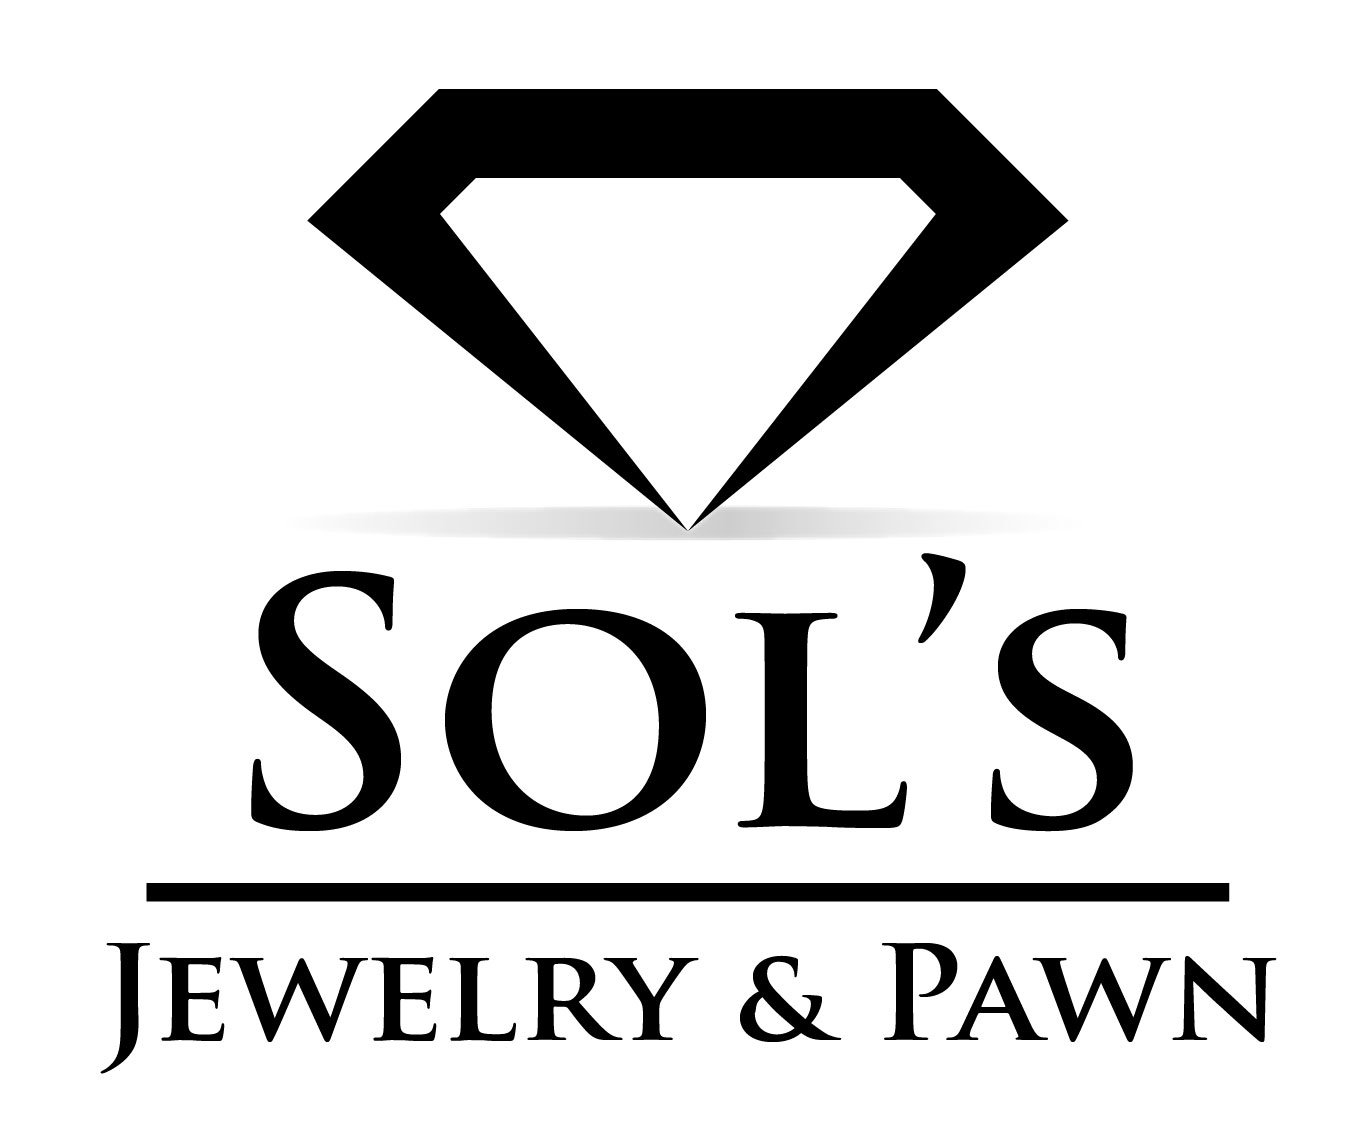 Top Pawn Shop Jewelry Gifts for Valentine's Day